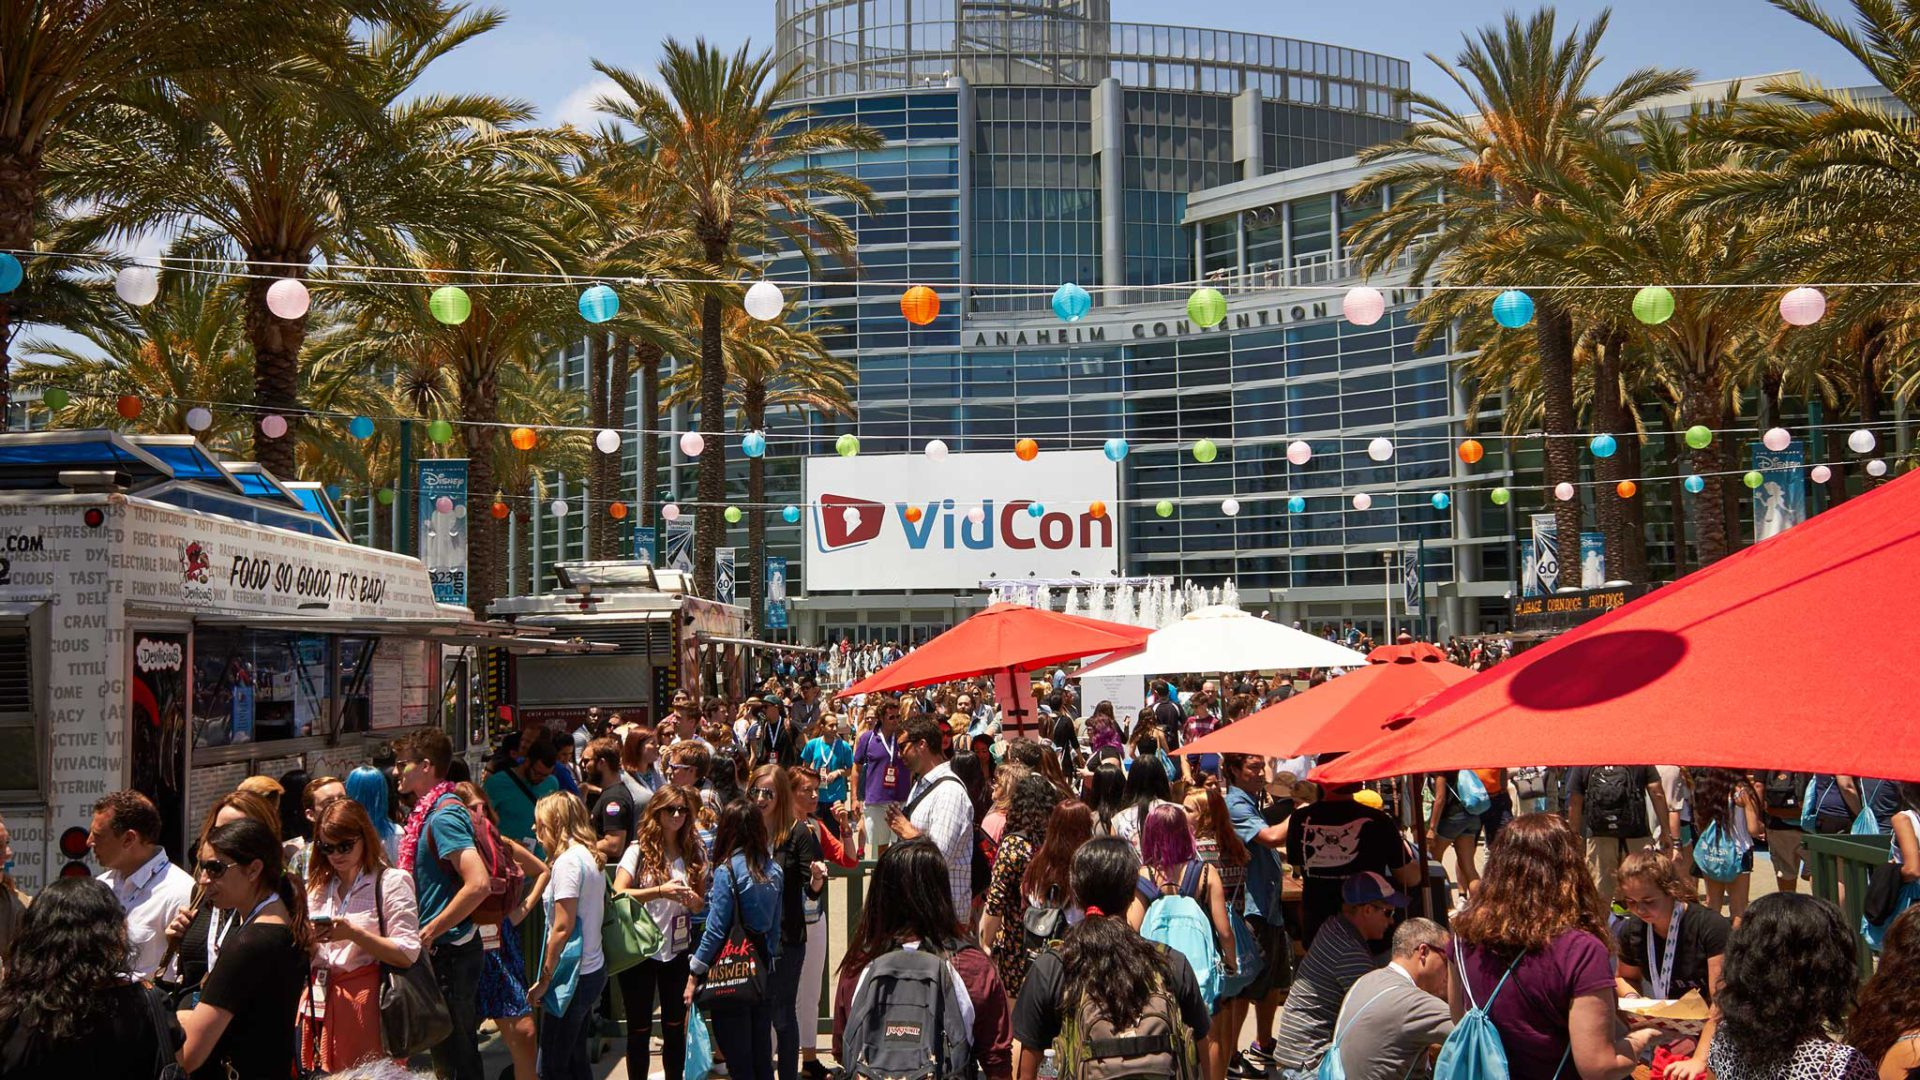 Busy crowds outside VidCon building